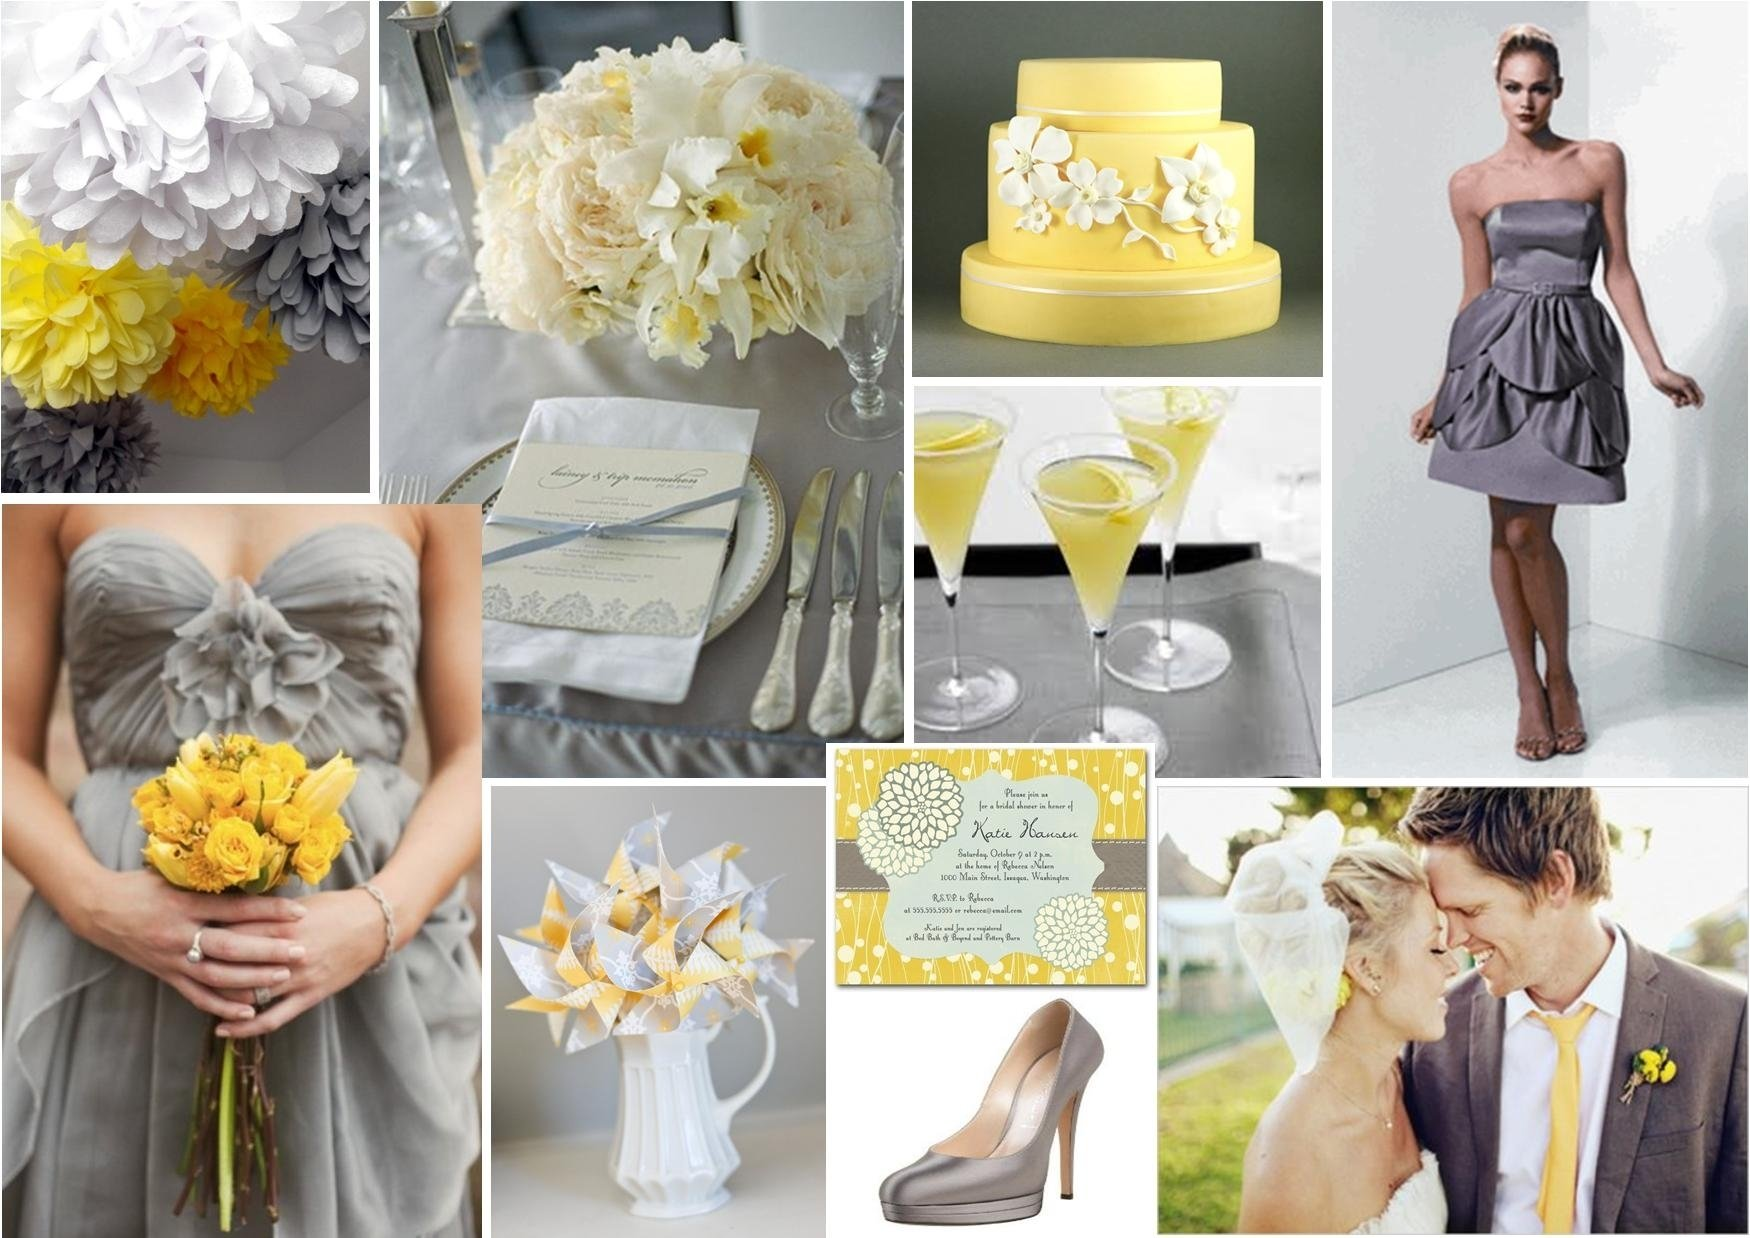 10 Most Recommended Grey And Yellow Wedding Ideas awesome grey and yellow wedding ideas gallery styles ideas 2018 2021